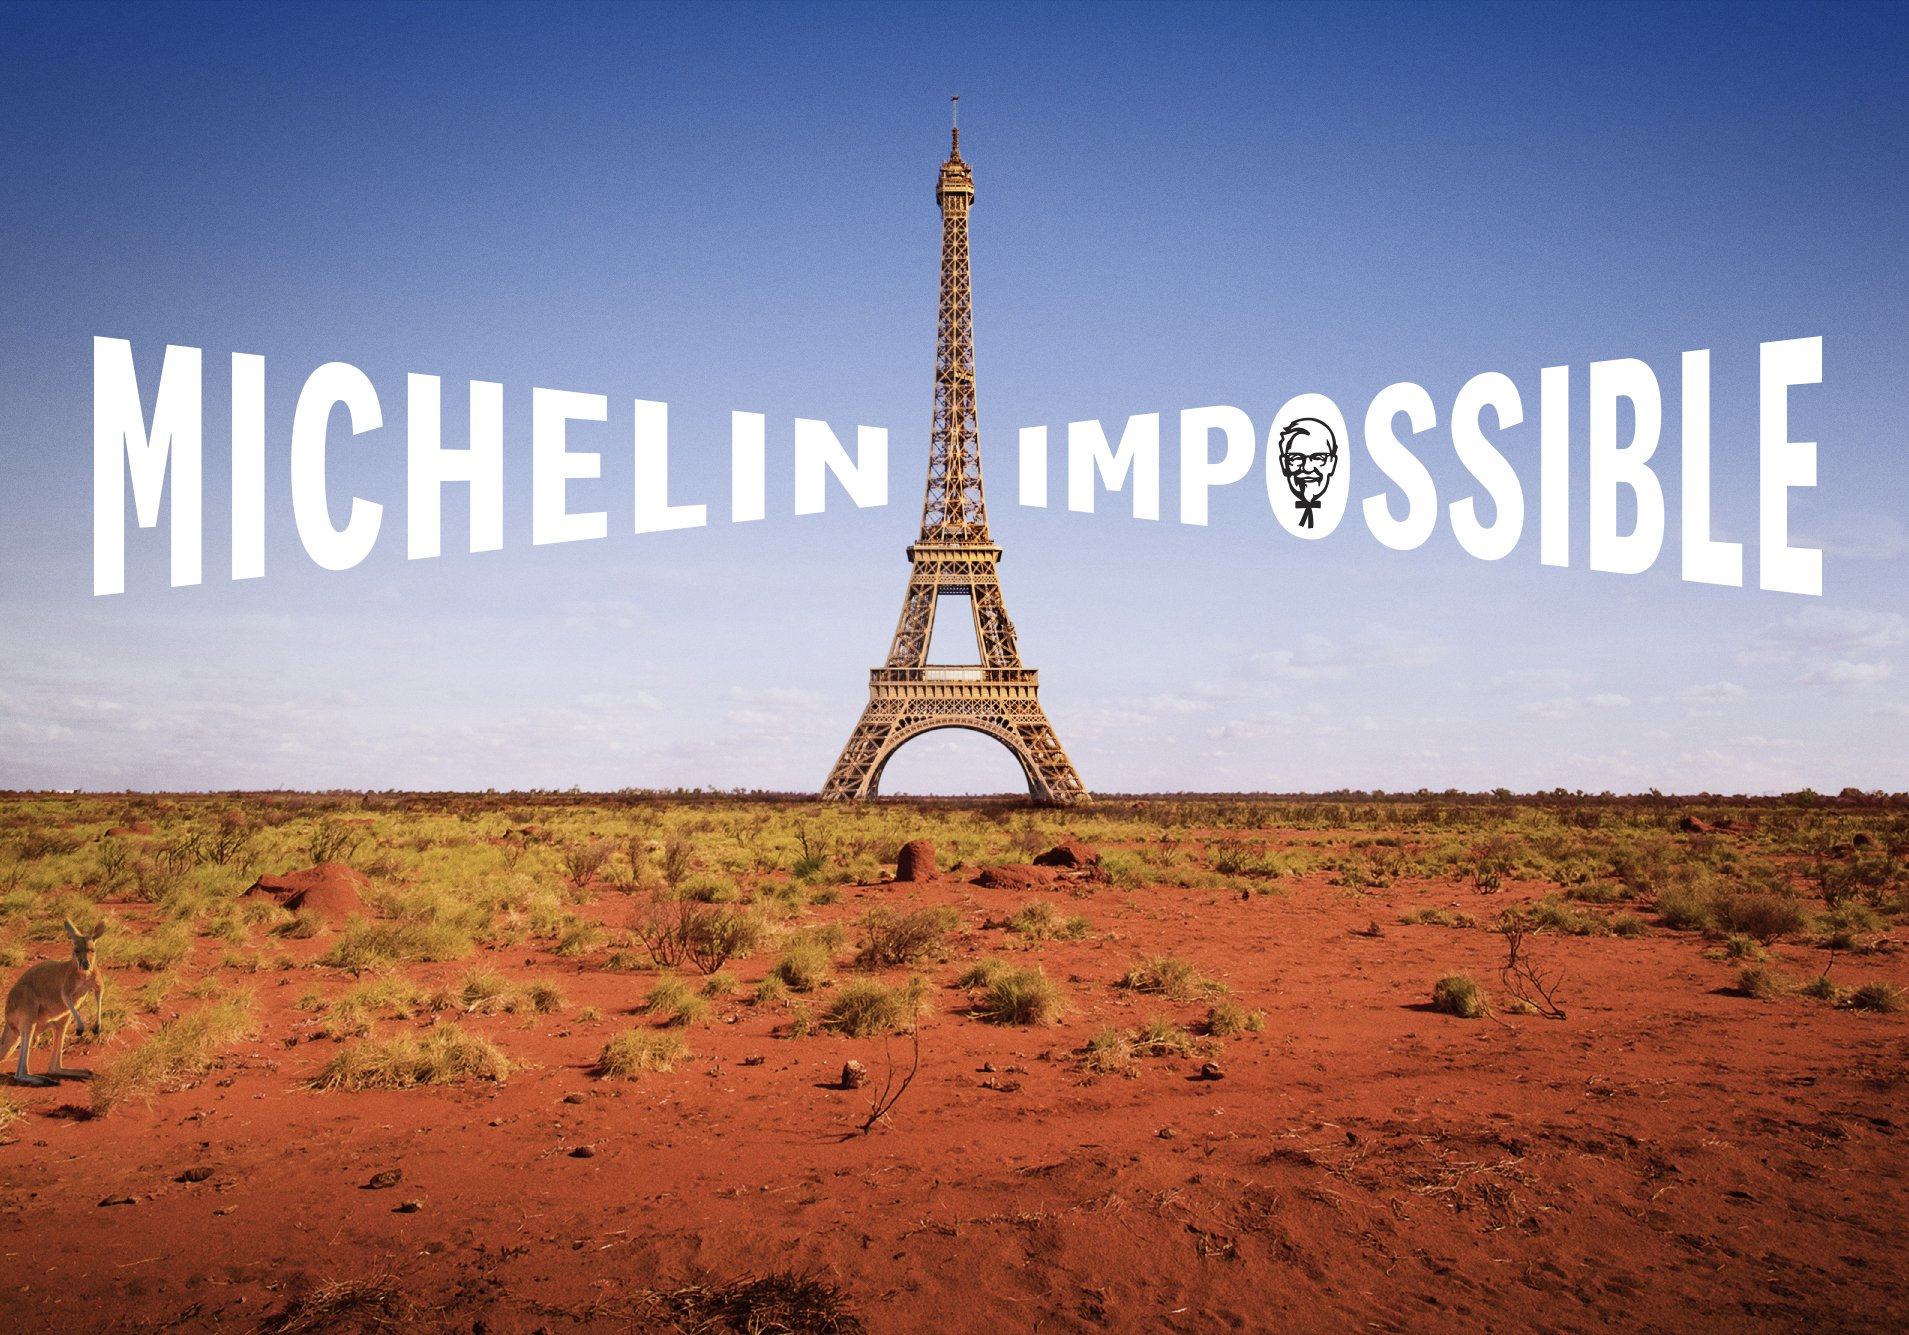 Thumbnail for Michelin Impossible